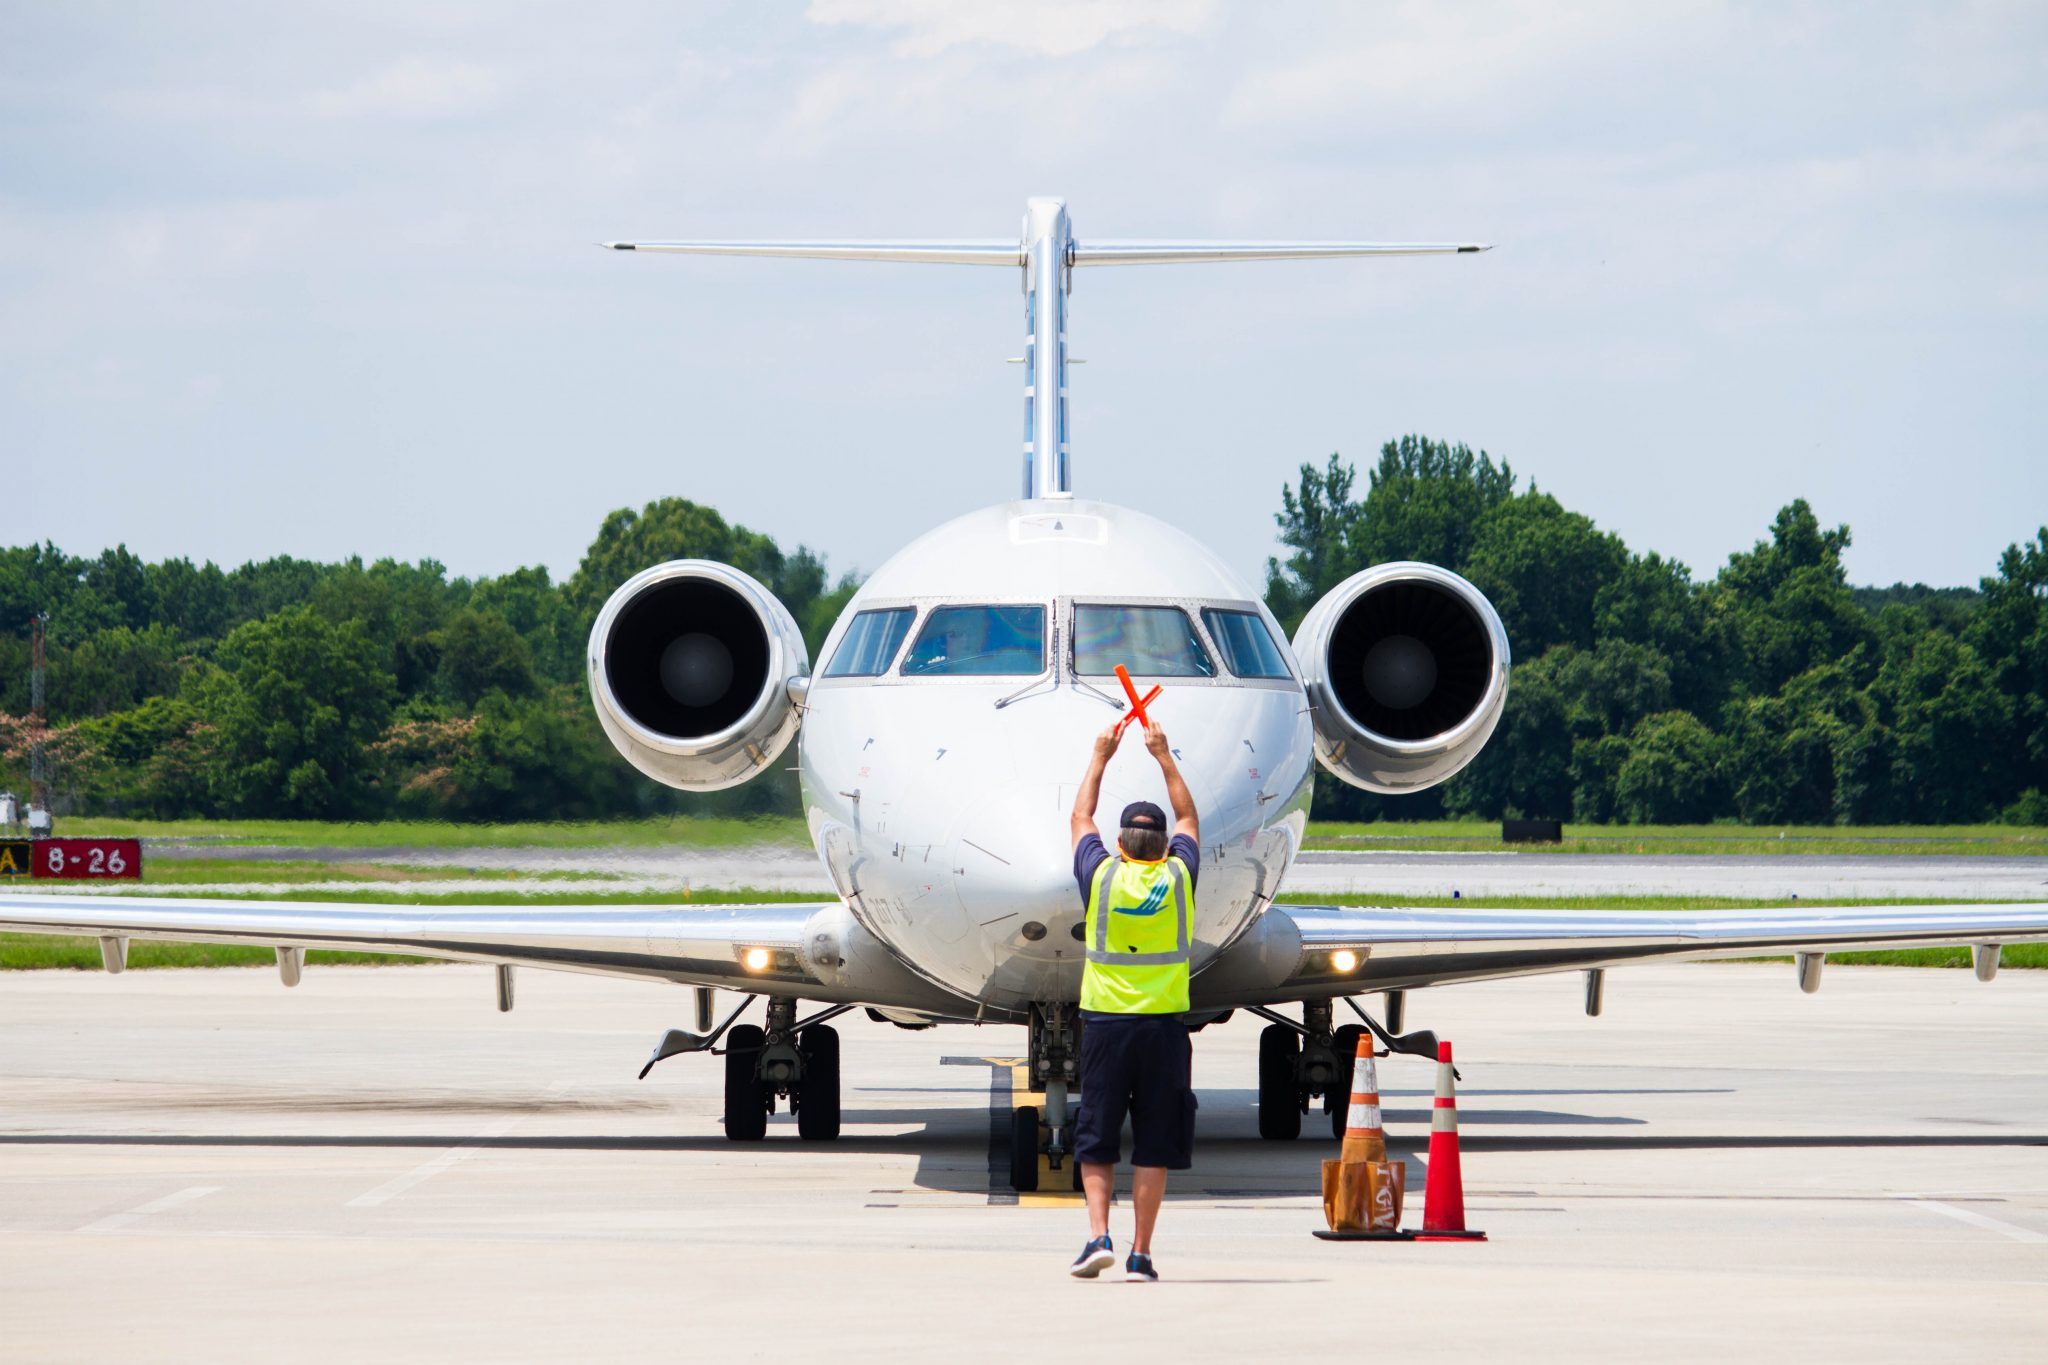 Plane on runway with marshaller